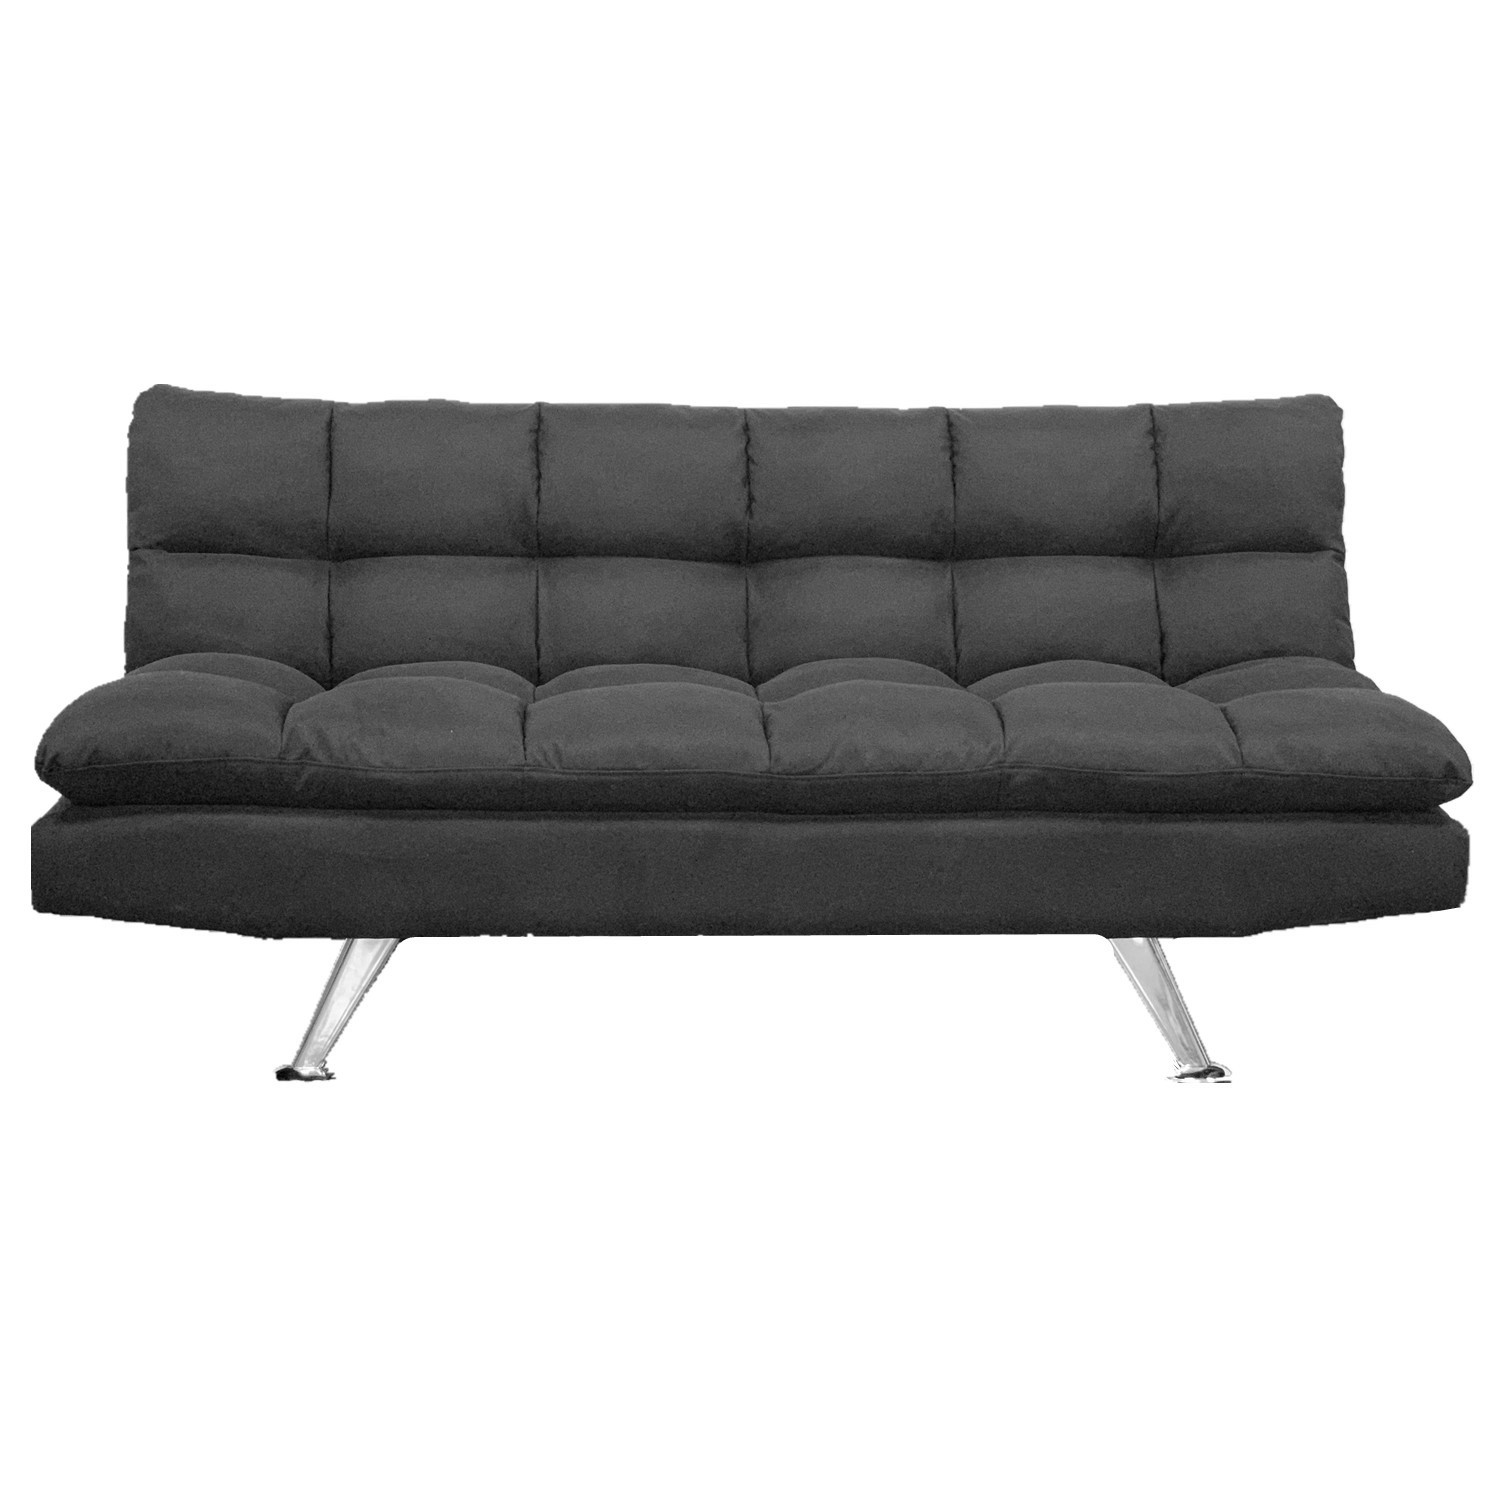 Black Cushioned Convertible Sofa Bed Living Room Relaxing Couch BT1923